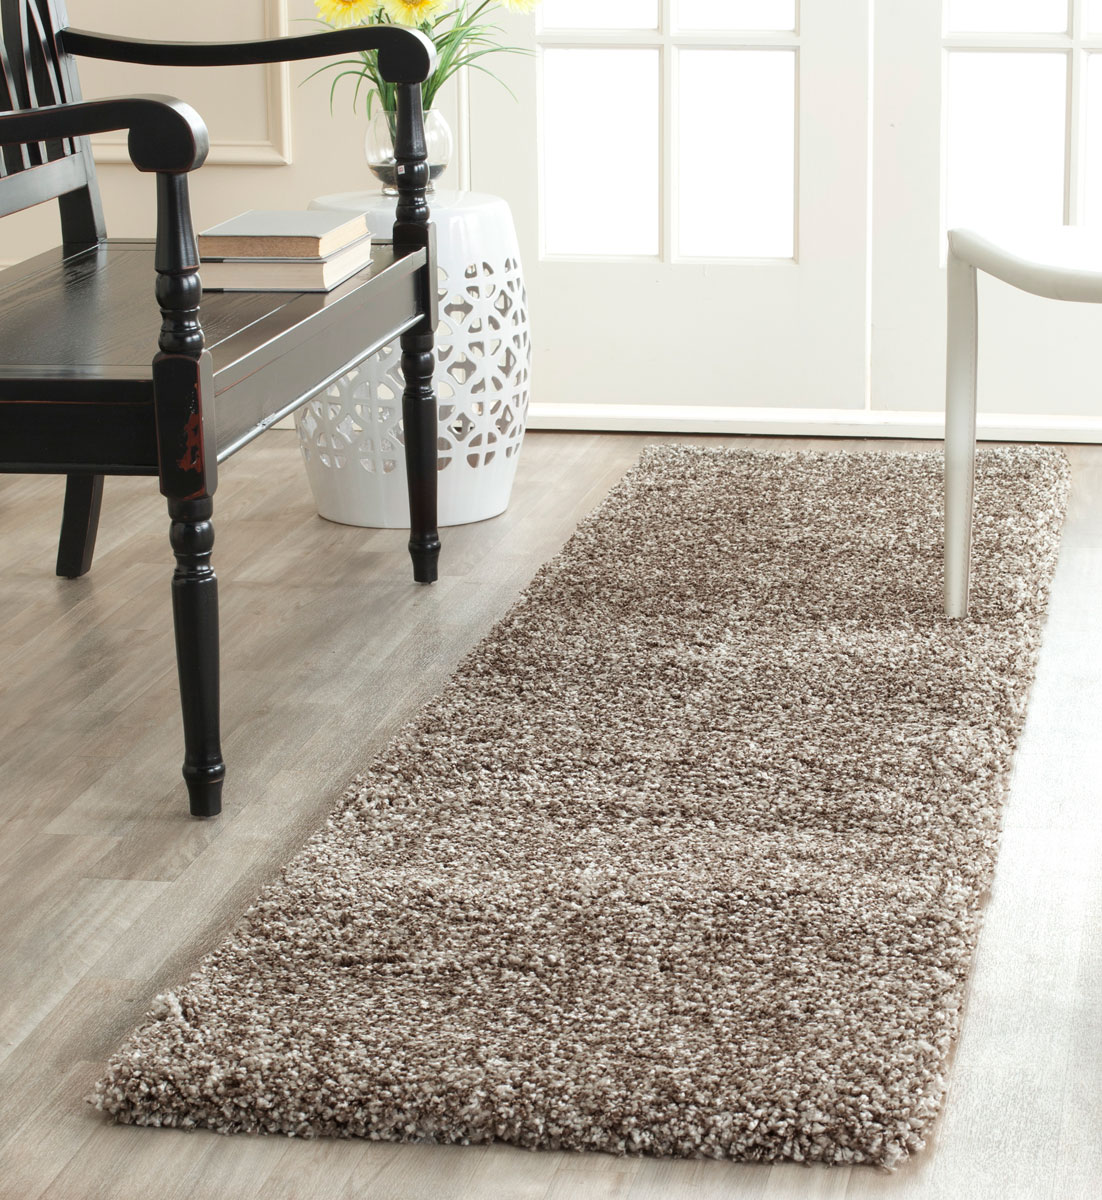 Leather Shag Area Rugs thick pile grey shag rug | milan collection - safavieh